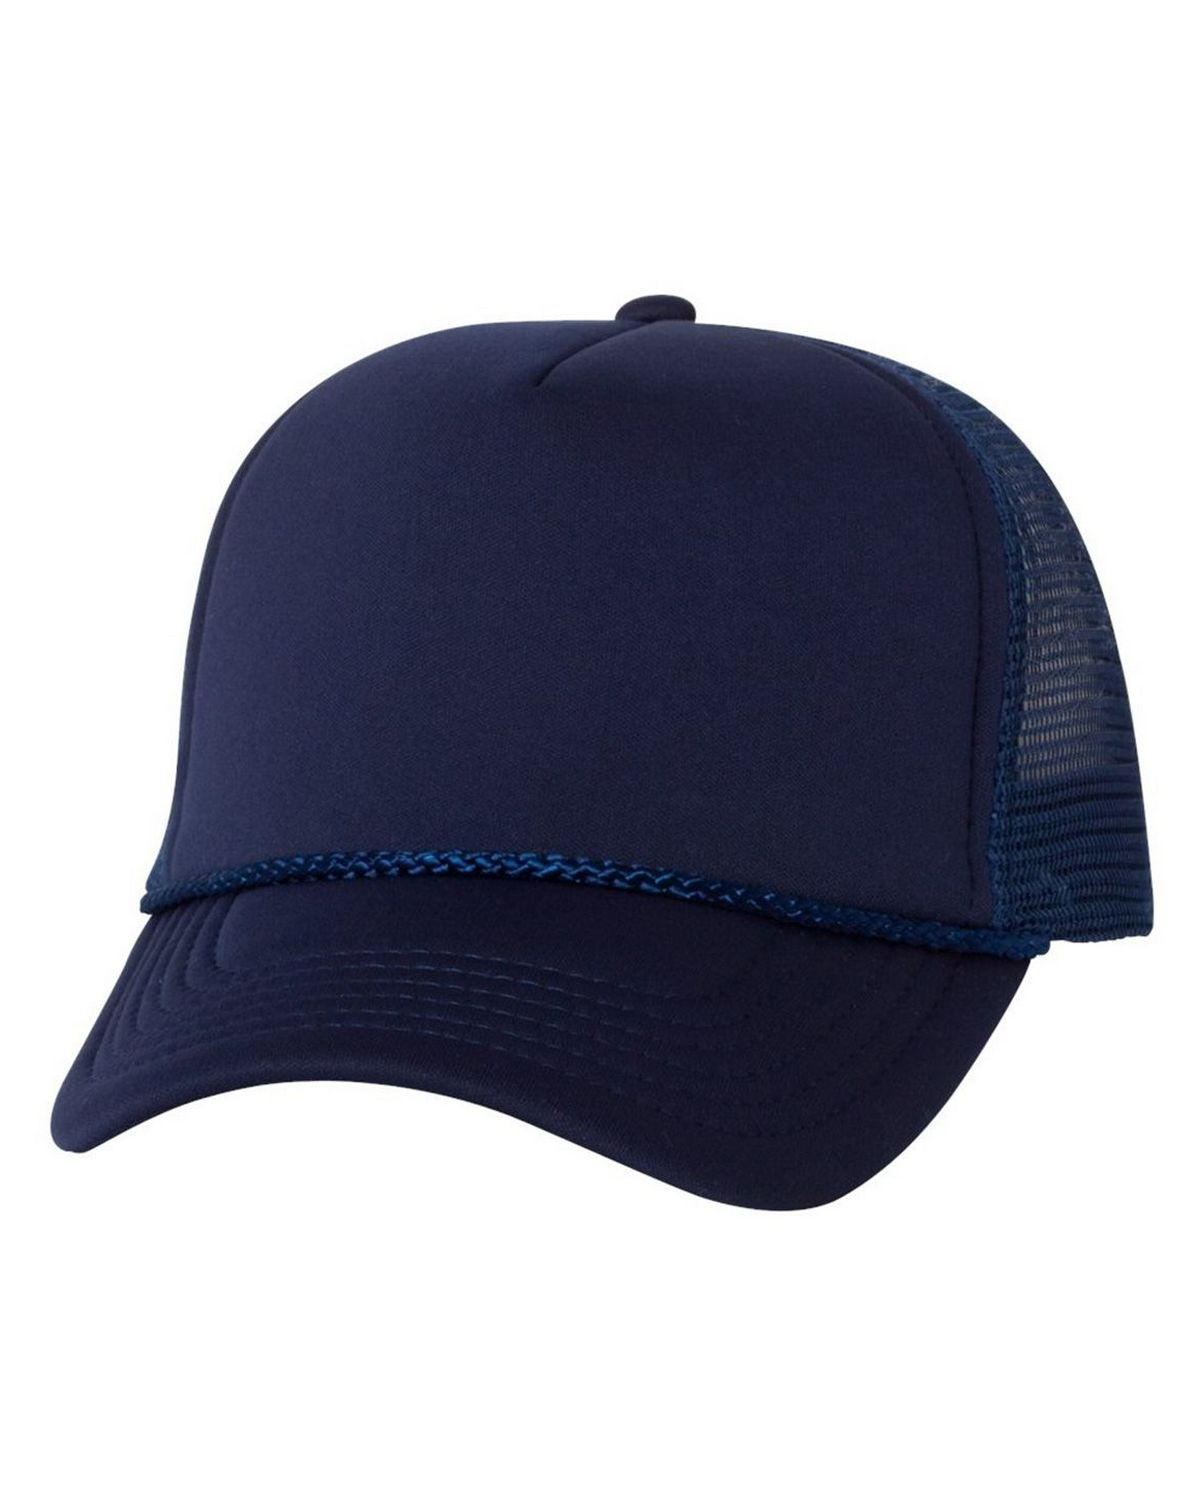 268d34e80101b Valucap VC700 Foam Trucker Cap - Free Shipping Available